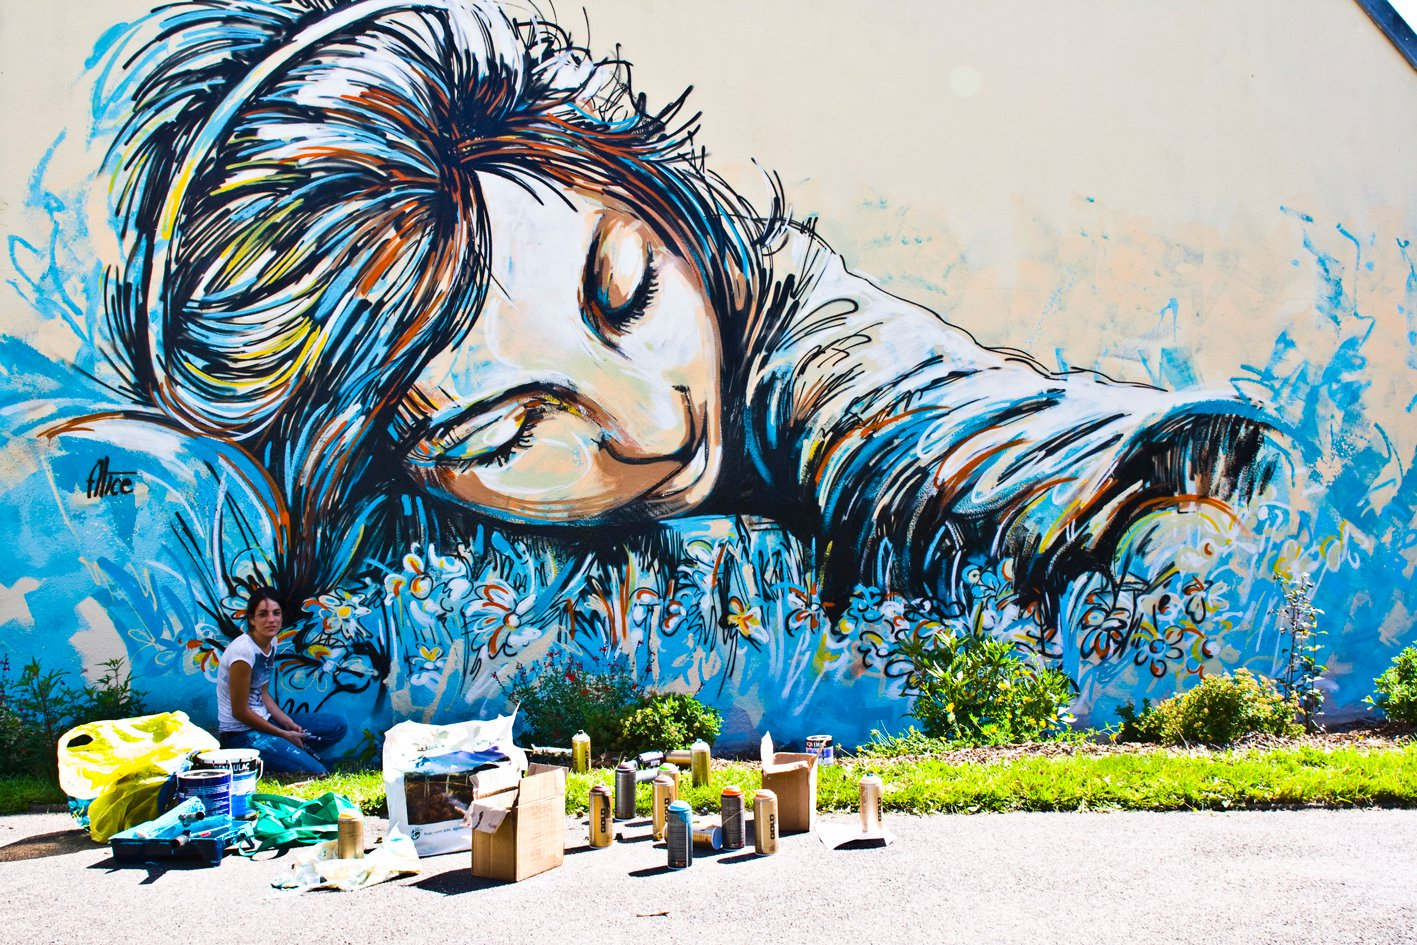 Street Art by Alice Pasquini